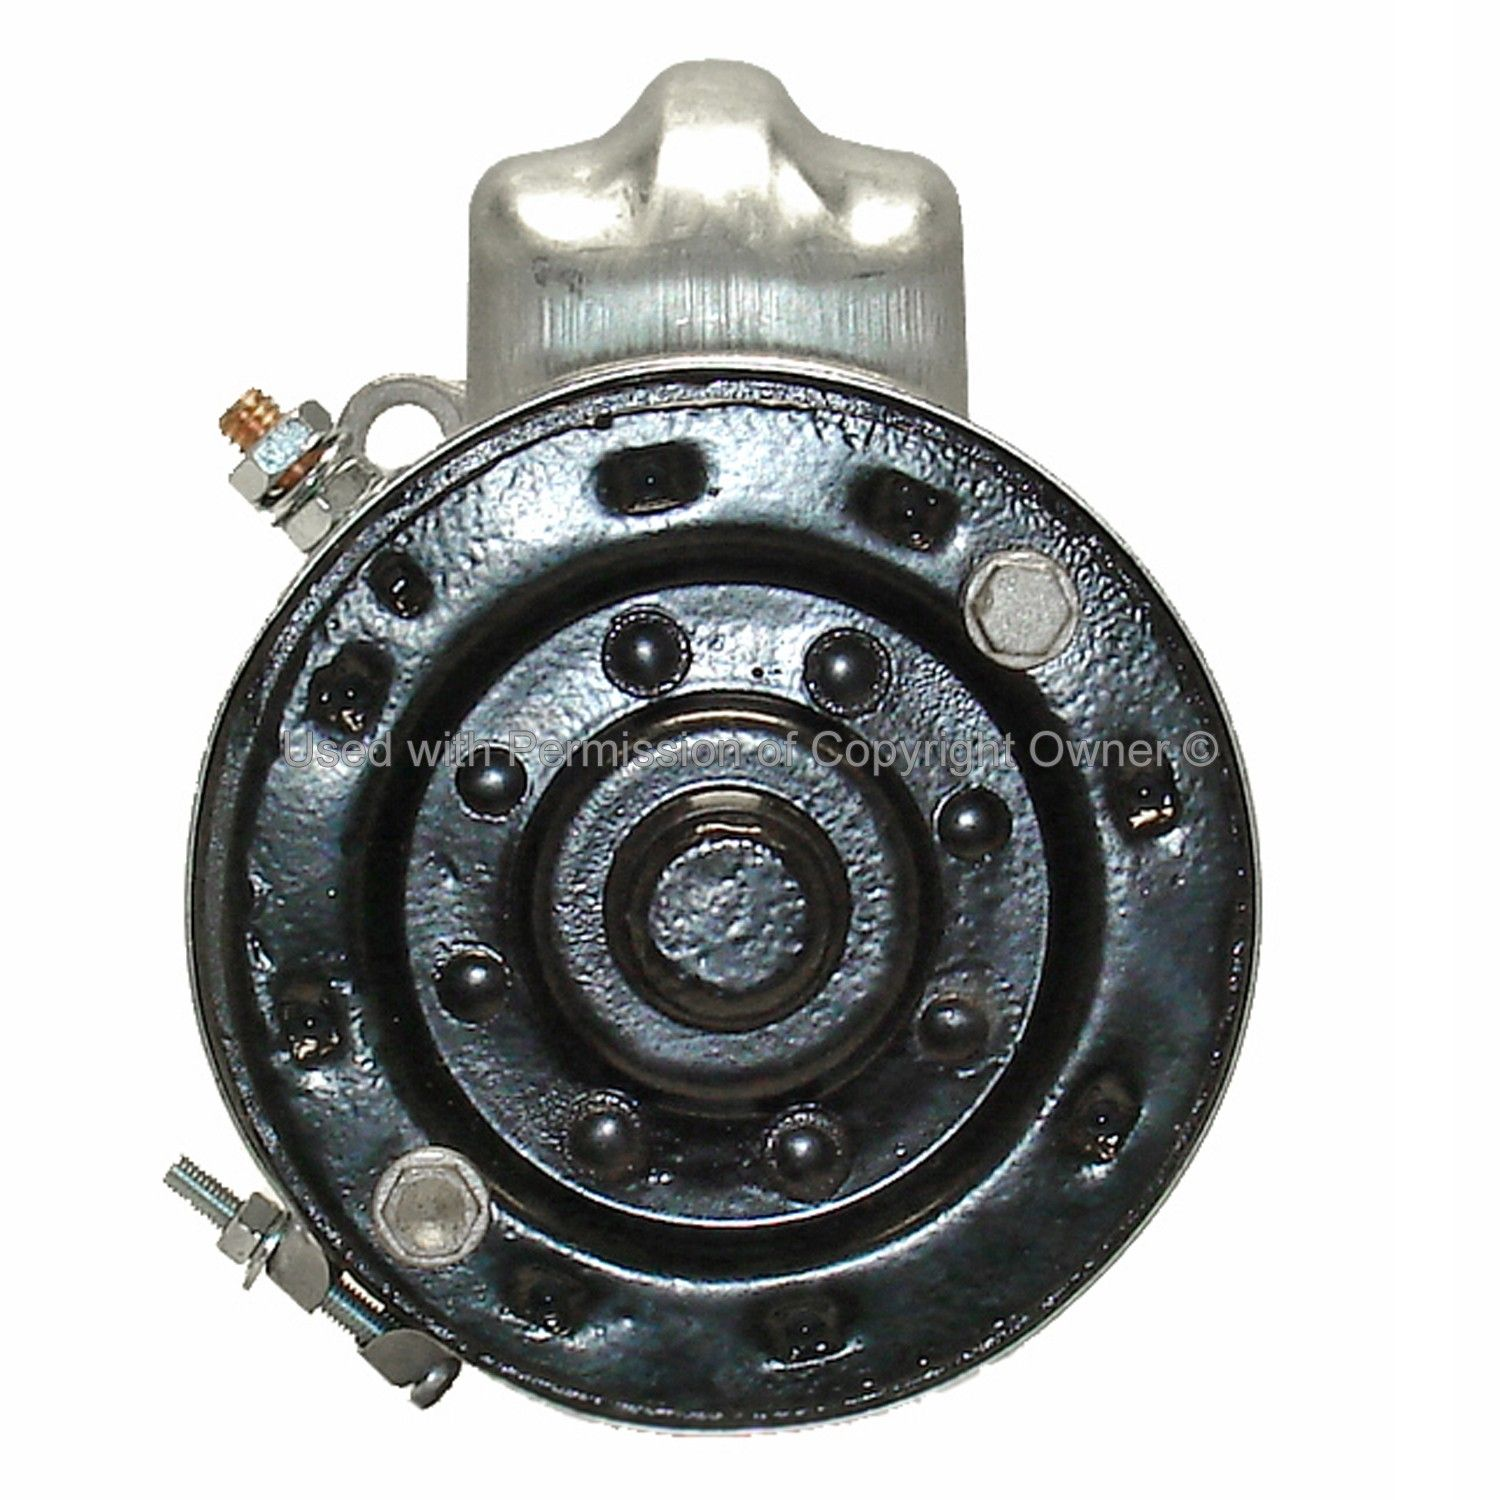 Ford F 150 Starter Motor Replacement Bosch Denso Mpa Motorcraft 2007 Solenoid 1976 8 Cyl 50l 3124